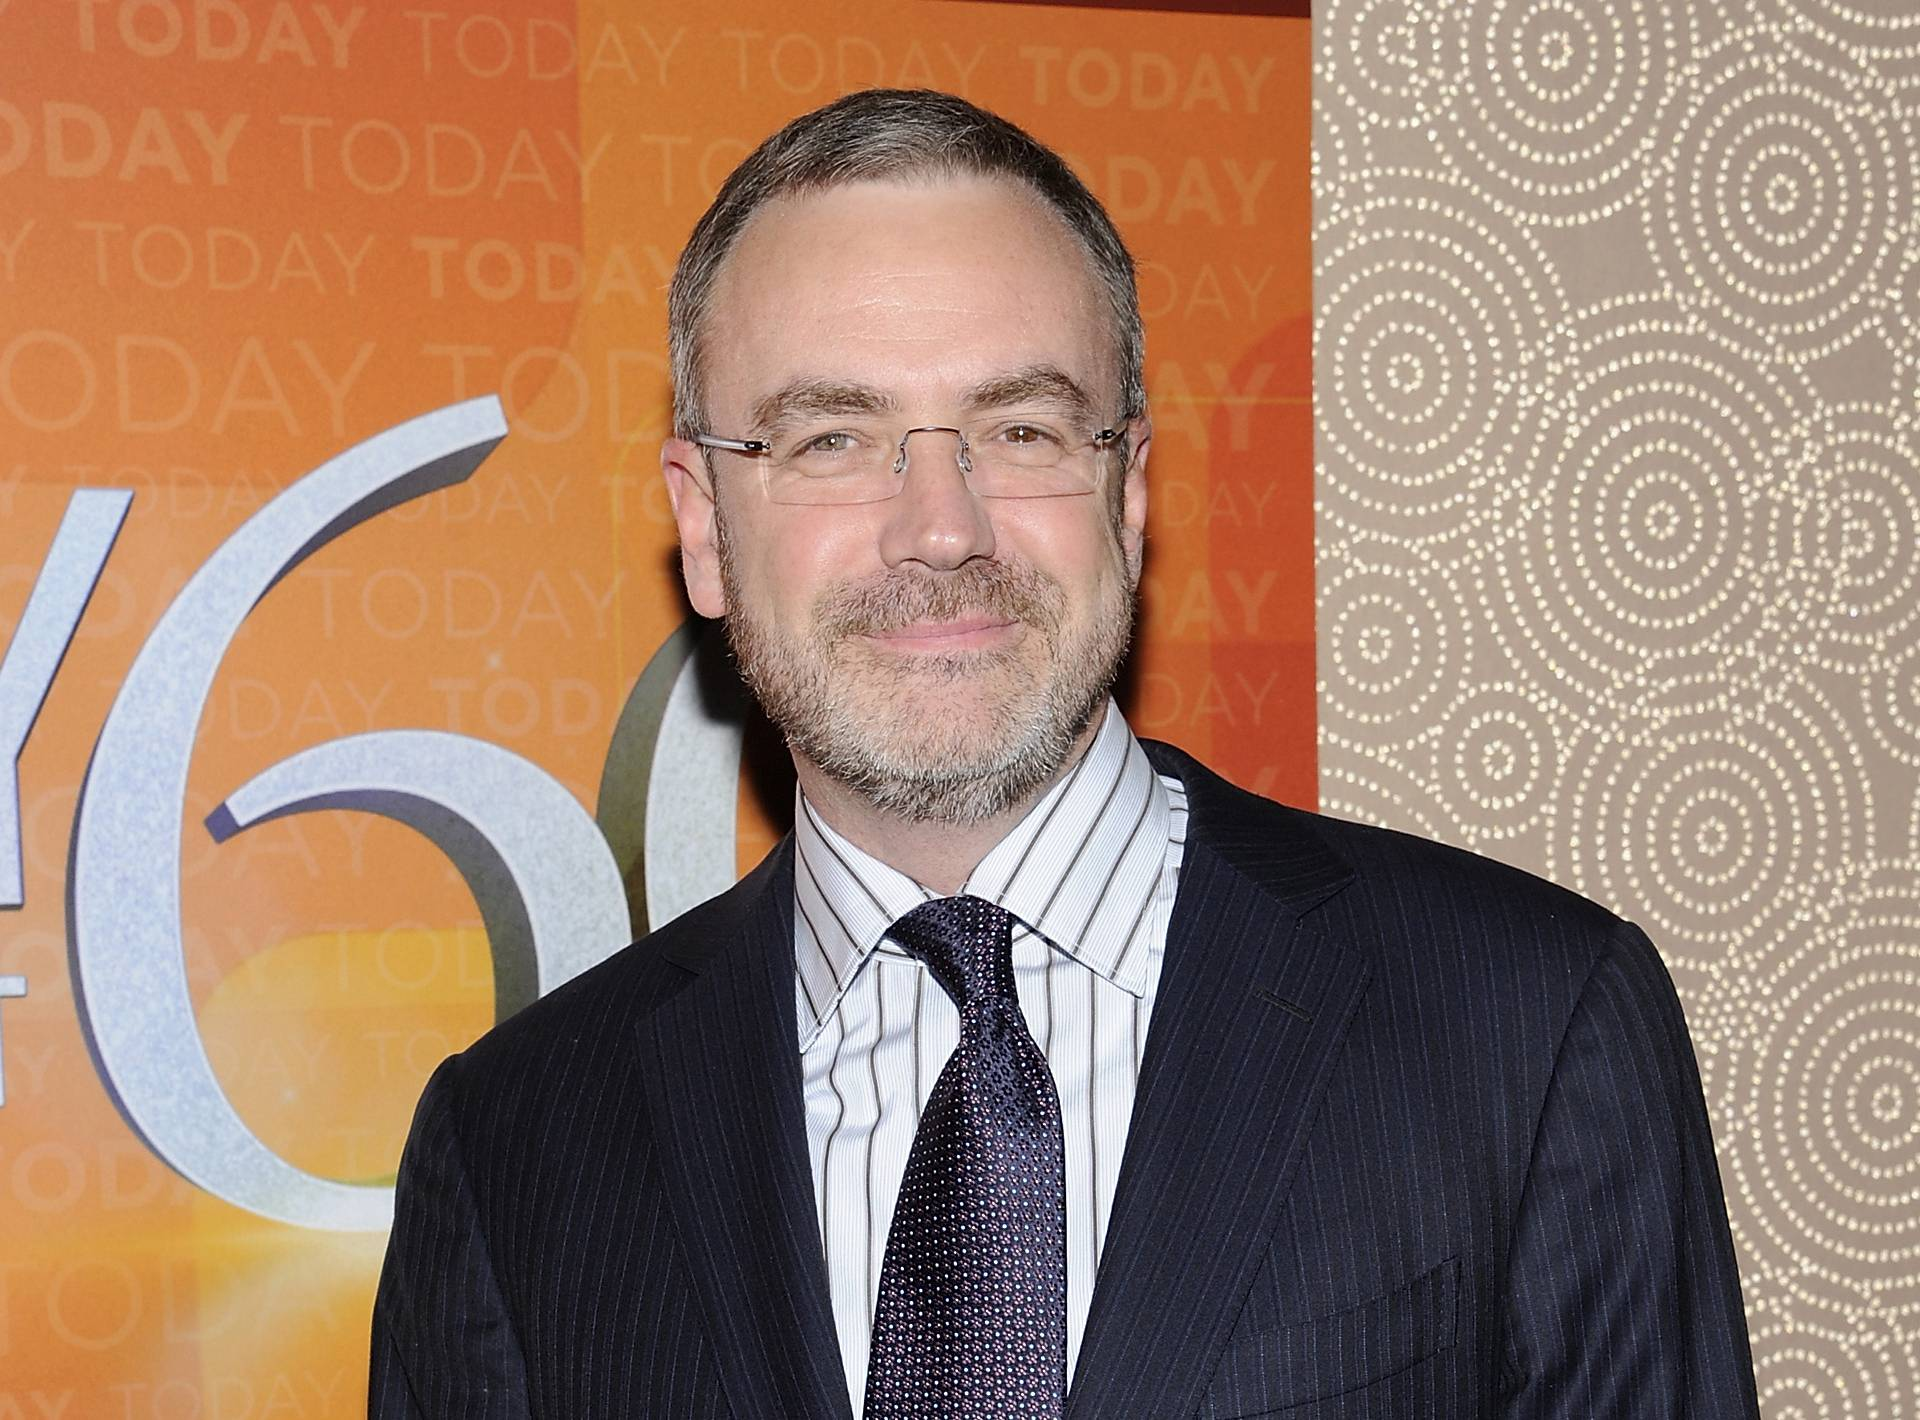 Former NBC News president Steve Capus will join CBS in July as the top executive at Scott Pelley's evening newscast, the network said Tuesday, May 6, 2014.